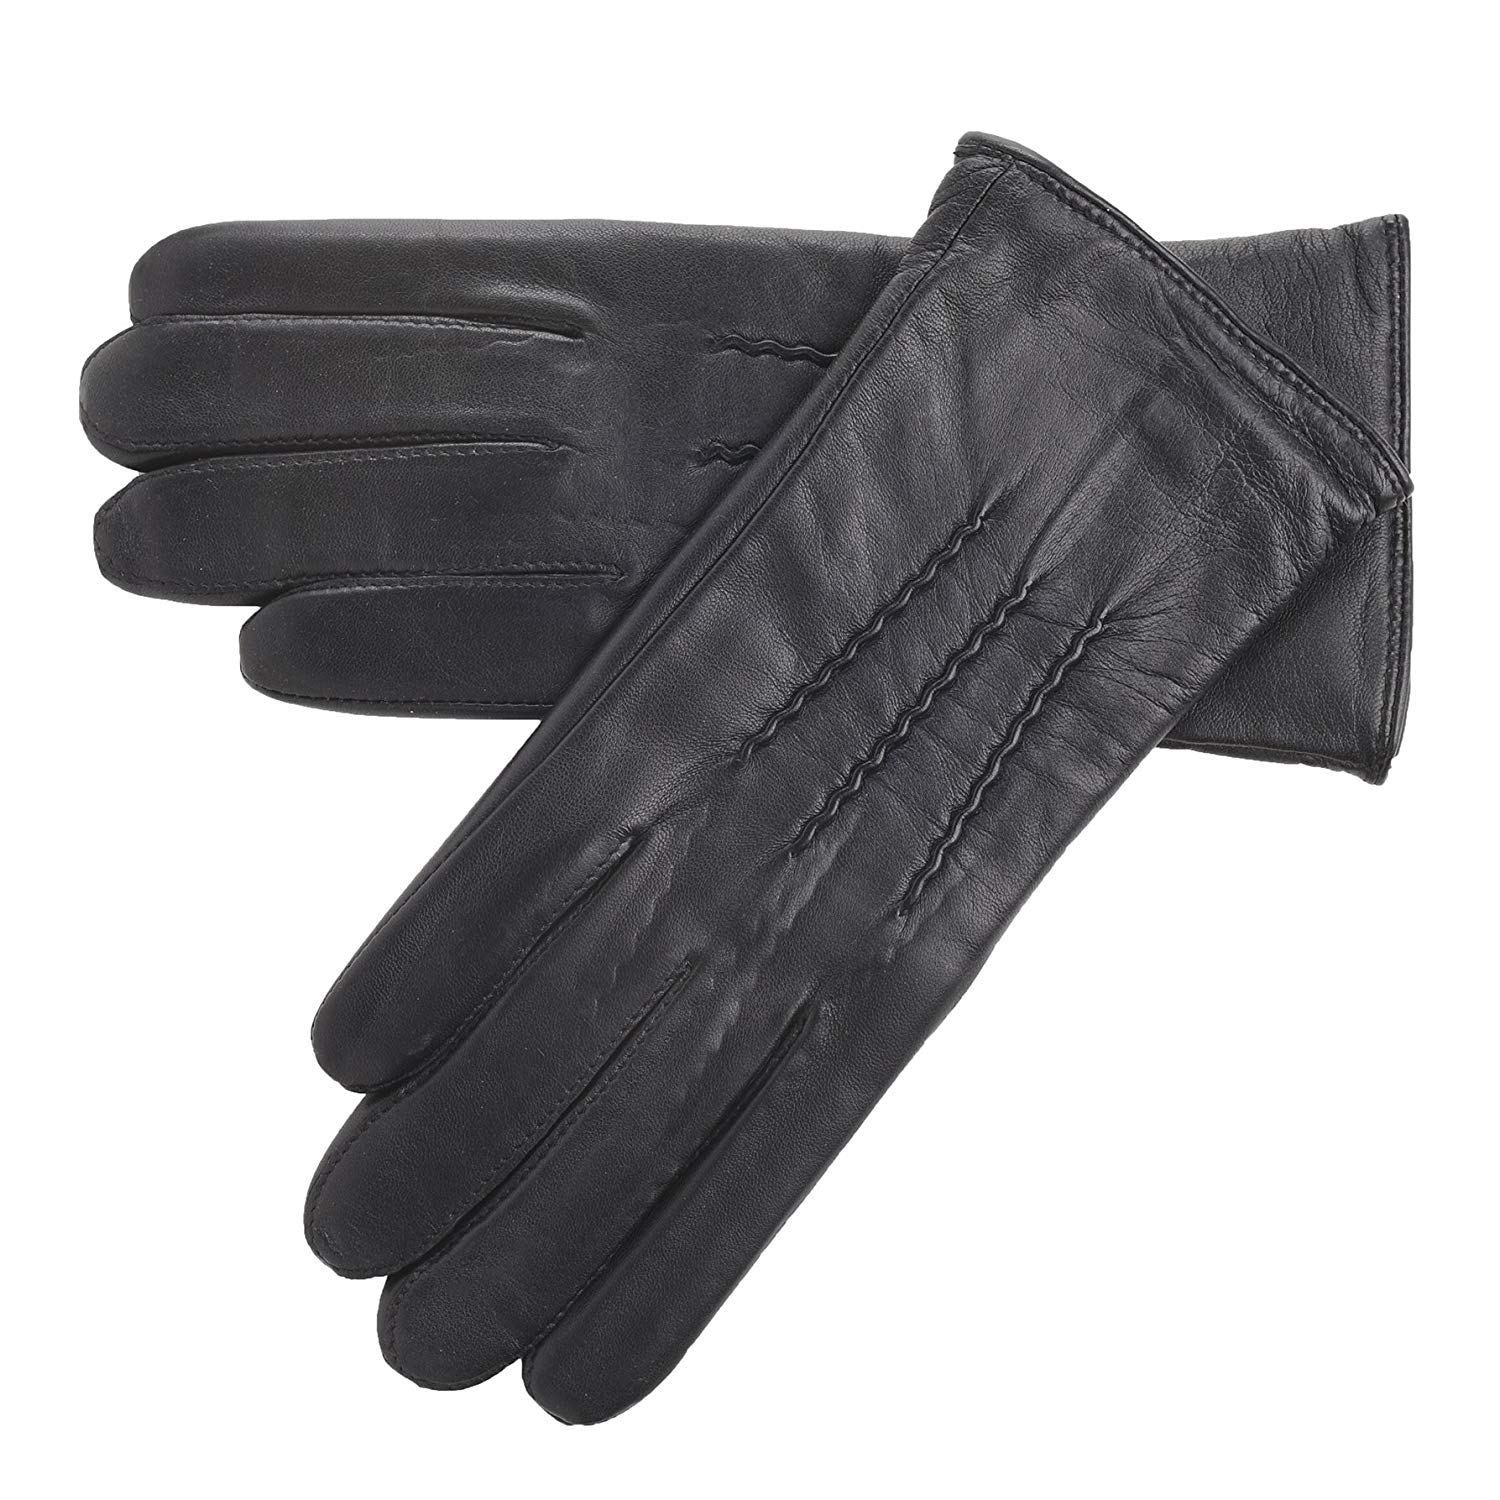 9da2b210c4627 Get Quotations · Lambland Ladies Genuine Leather Driving Gloves with  Central Stitch Design - Black, Navy, Plum